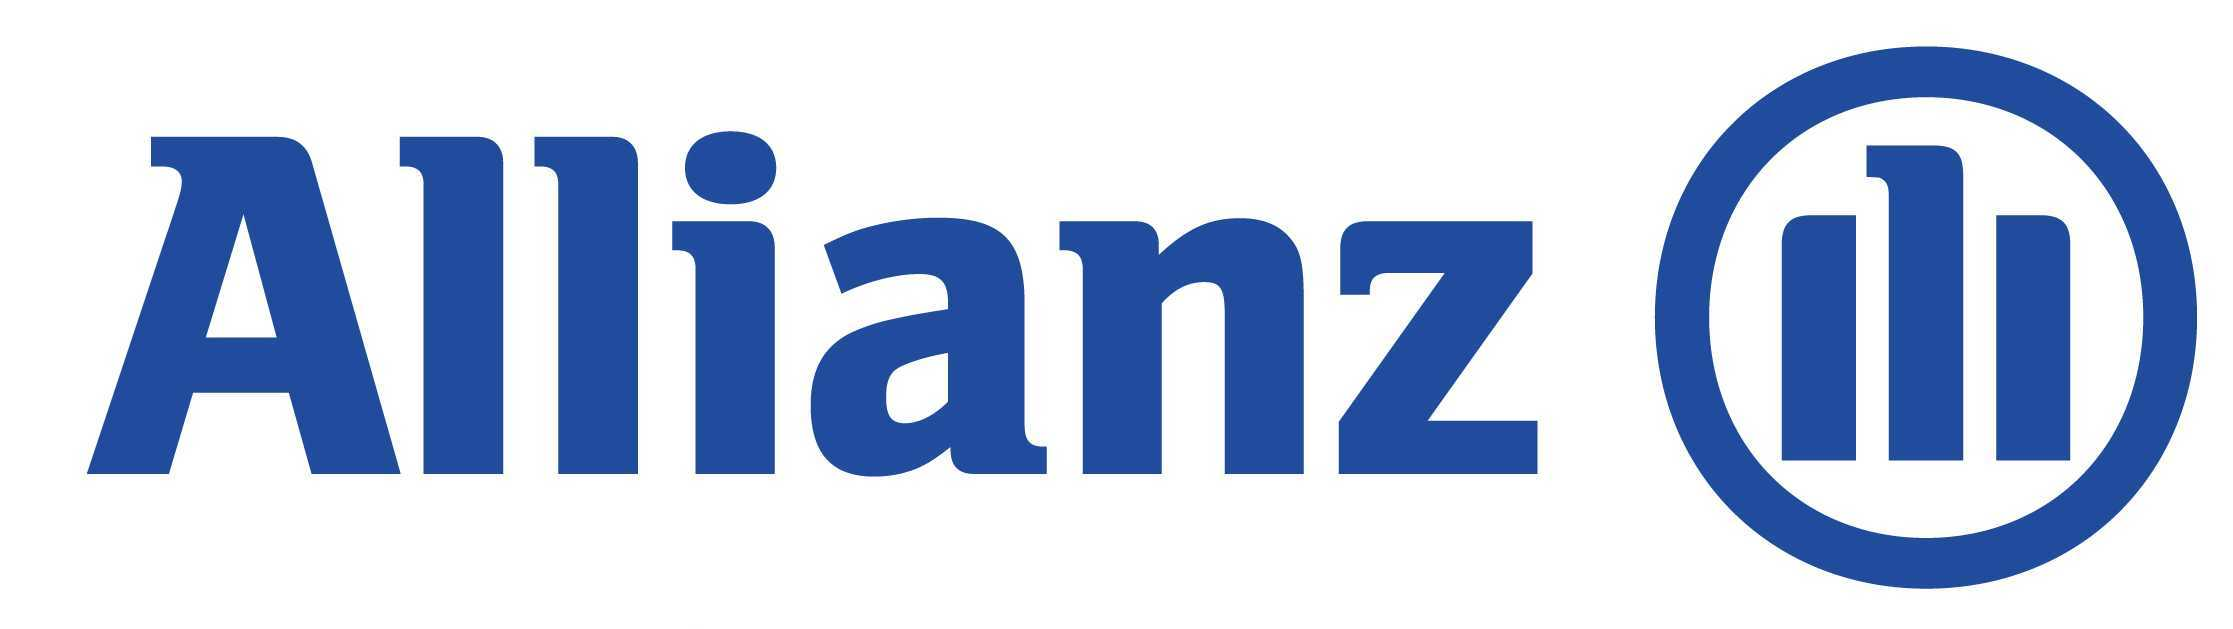 Allianz Logo Wallpaper